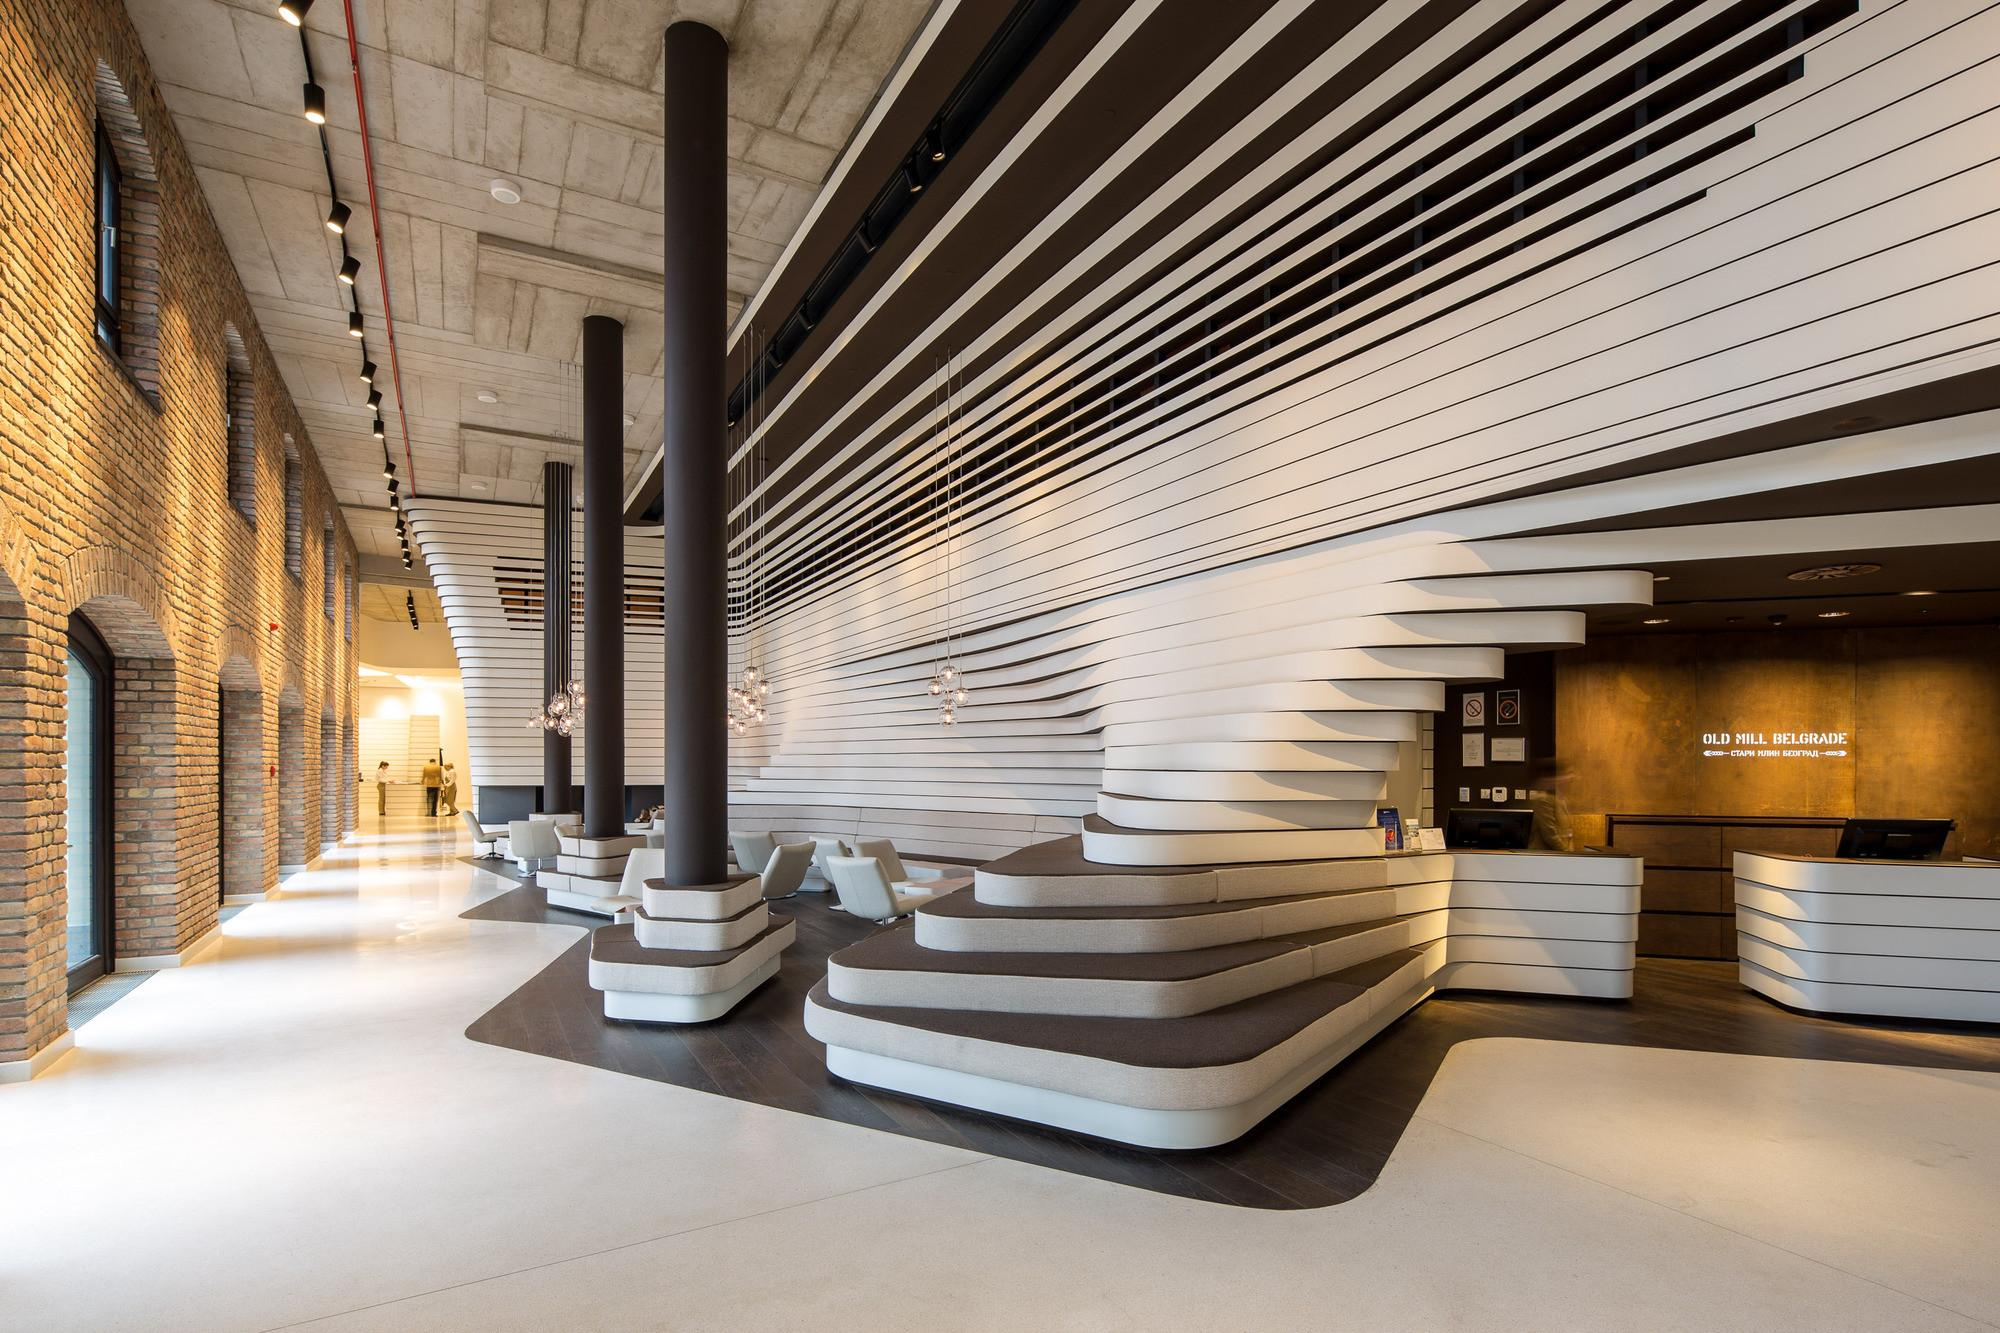 Old Mill Hotel Belgrade Graft Architects Archdaily